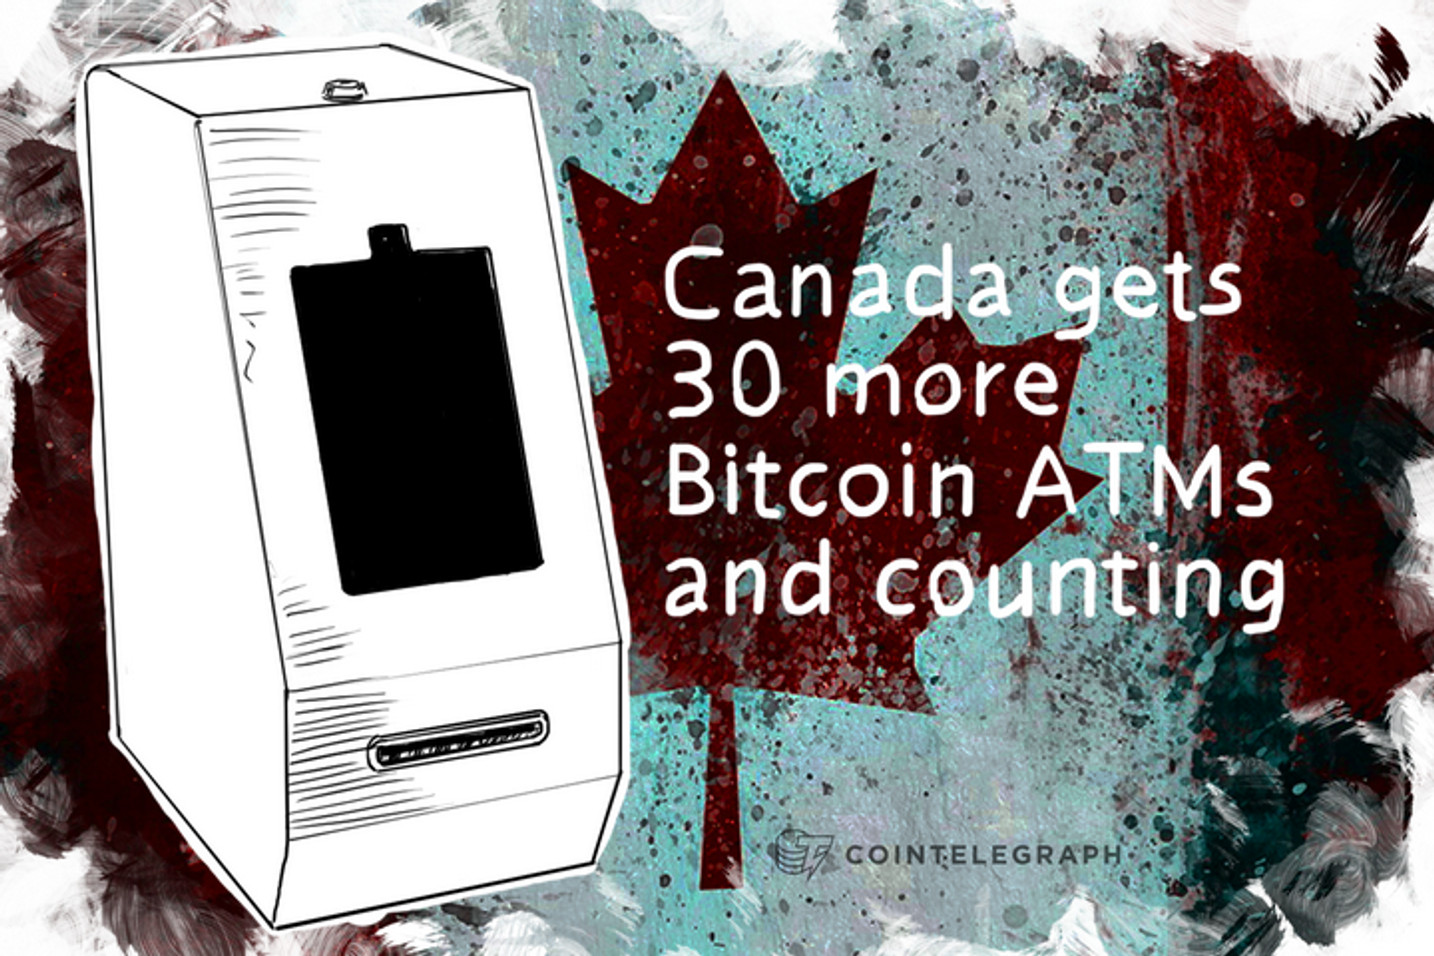 Canada gets 30 more Bitcoin ATMs and counting